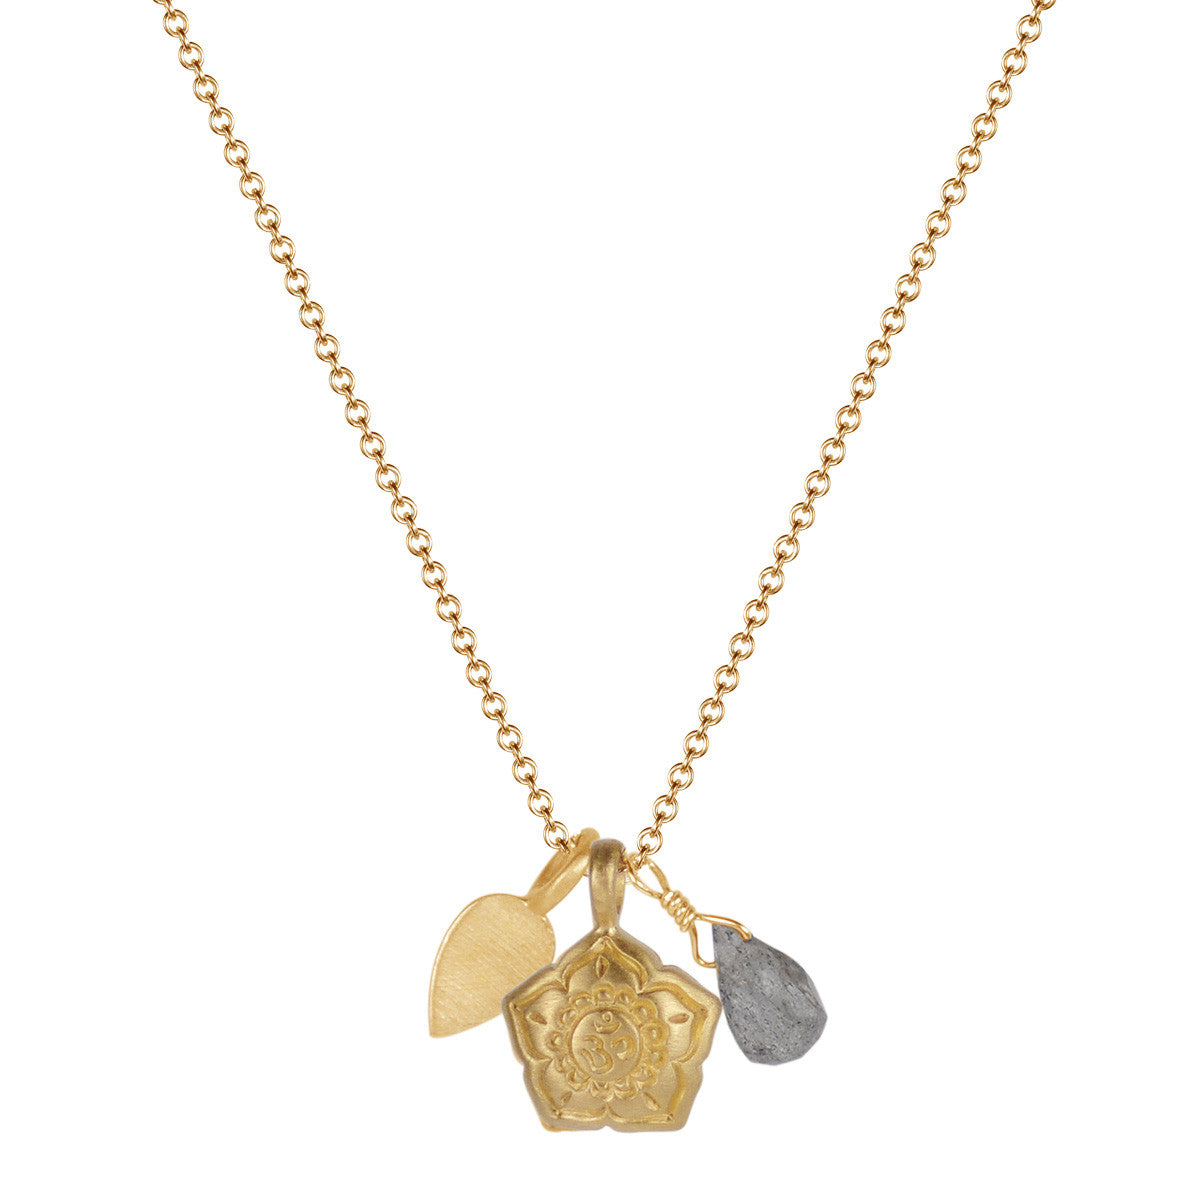 10K Gold Om Flower Trinket Pendant with Labradorite